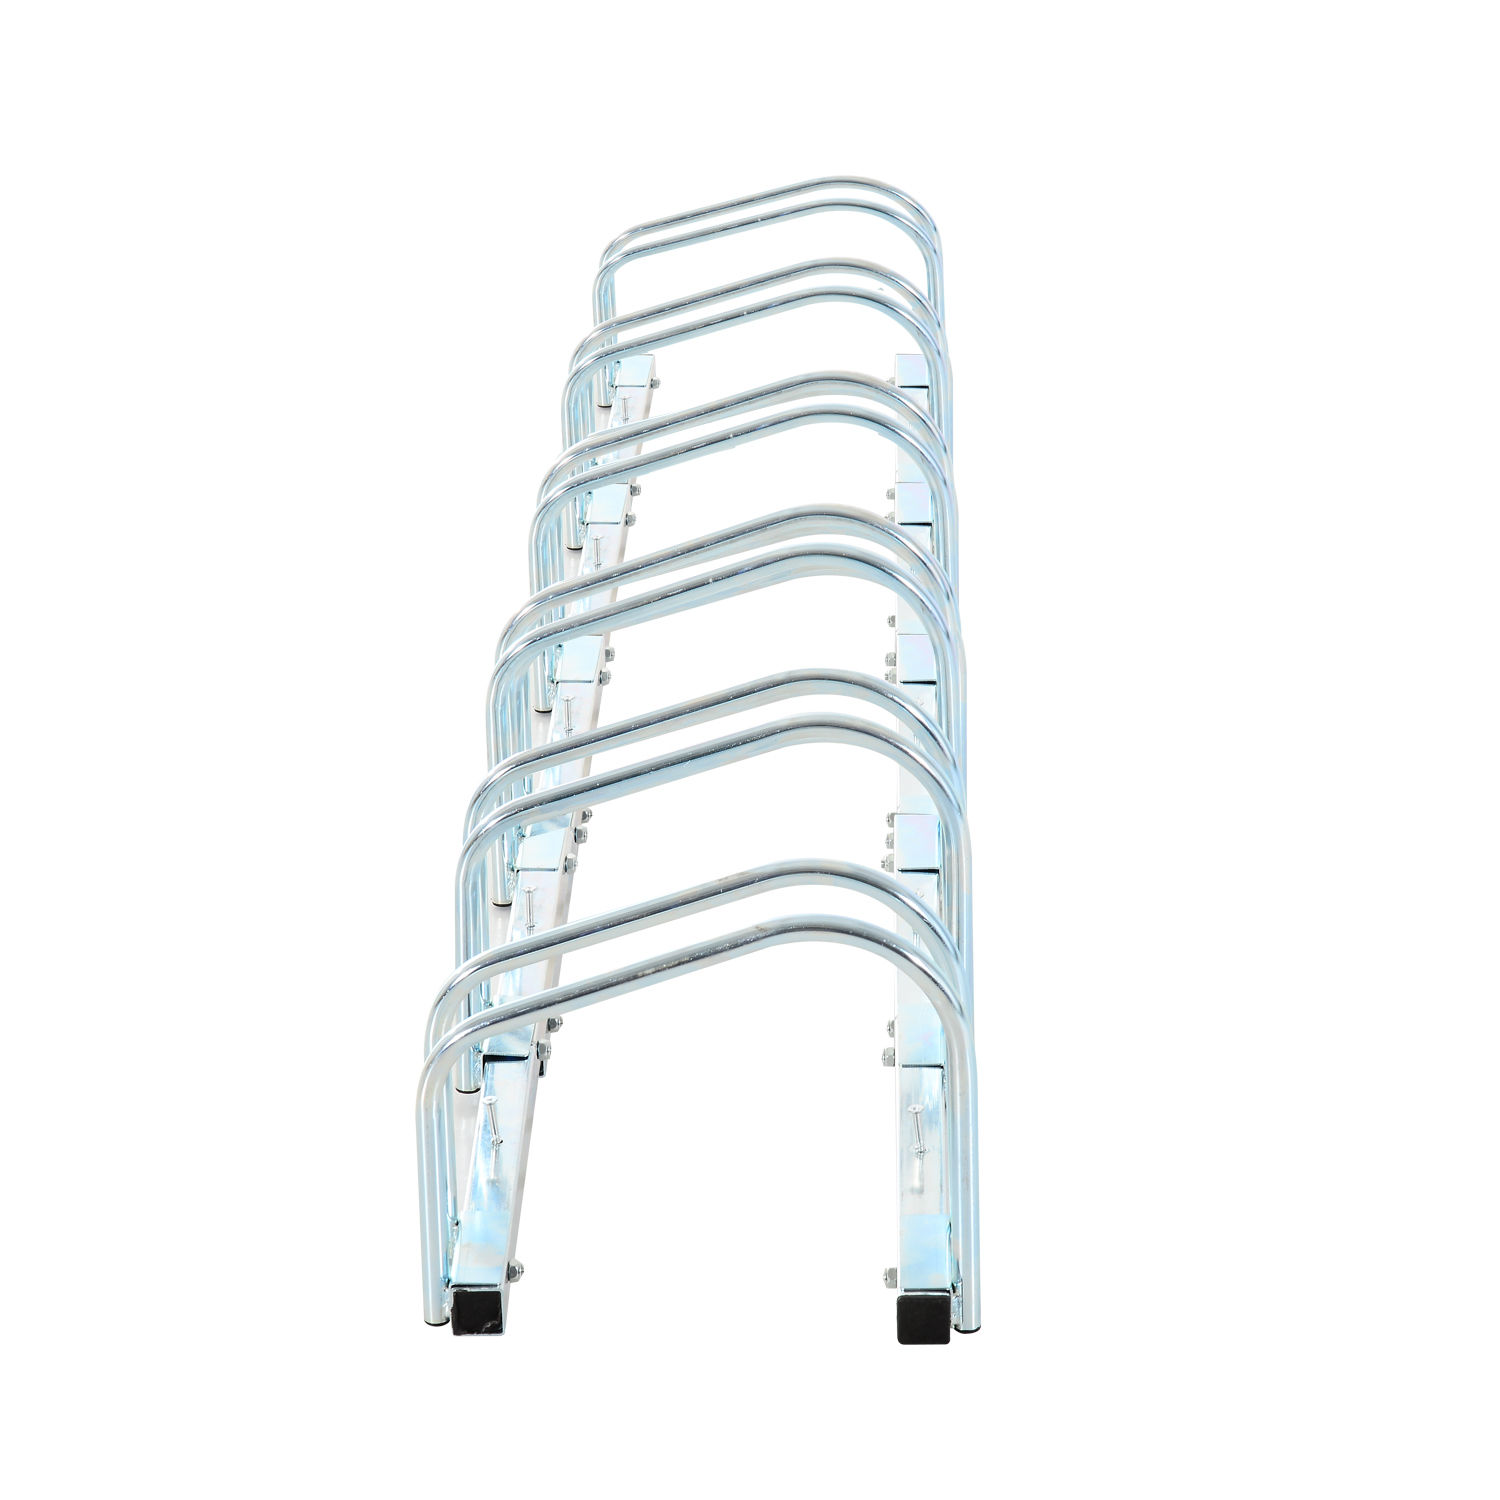 Bicycle-Bike-Parking-Cycle-Floor-Rack-Stand-Storage-Mount-Holder-Steel-Pipe miniatura 31